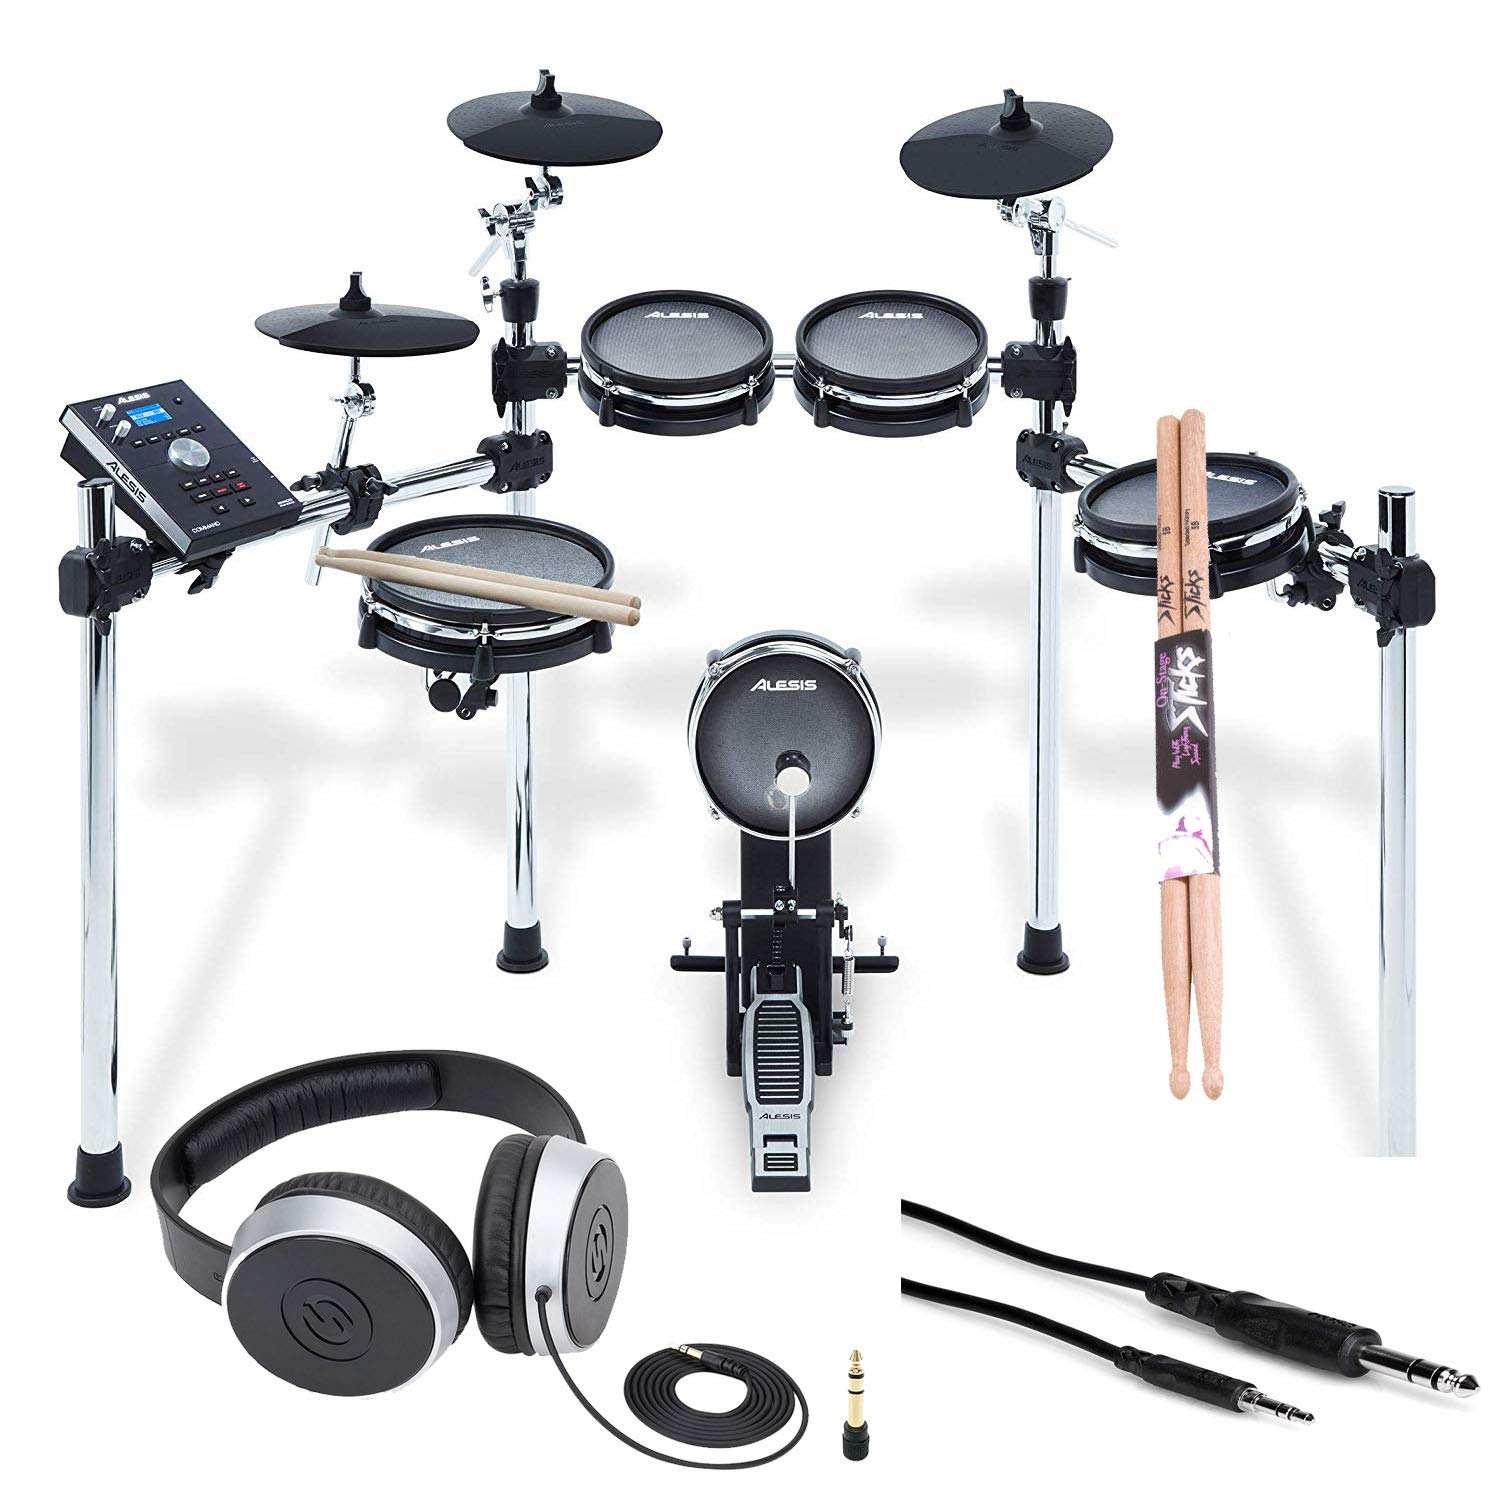 Alesis COMMAND MESH KIT Eight-Piece Electronic Drum Kit with Pair of Drumsticks + Samson SR550 Studio Headphones + Hosa 3.5 mm Interconnect Cable, 10 feet - Deluxe Accessory Bundle